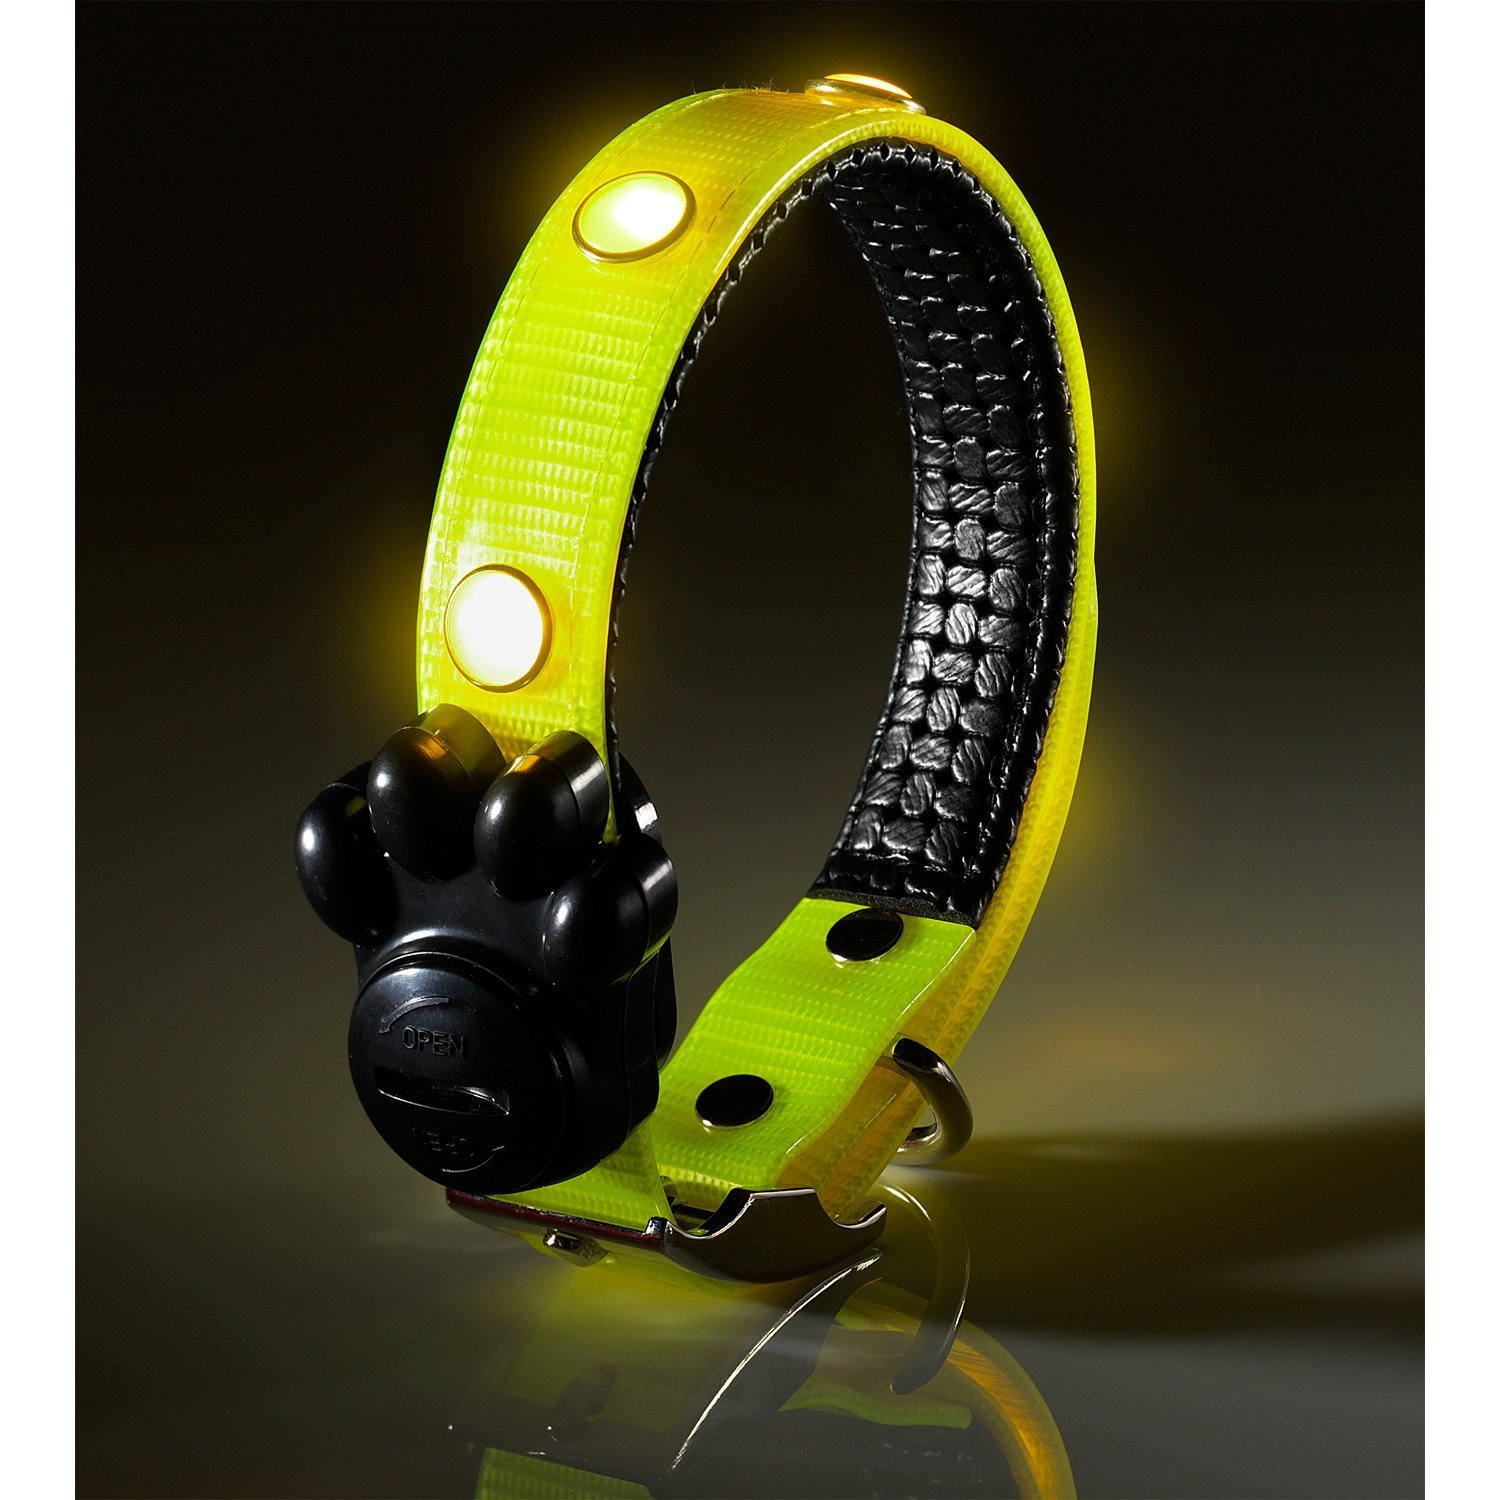 up green product night soft waterproof silicone adjustable necklace length collar ae dog safety usb led good pet light flashing rechargeable